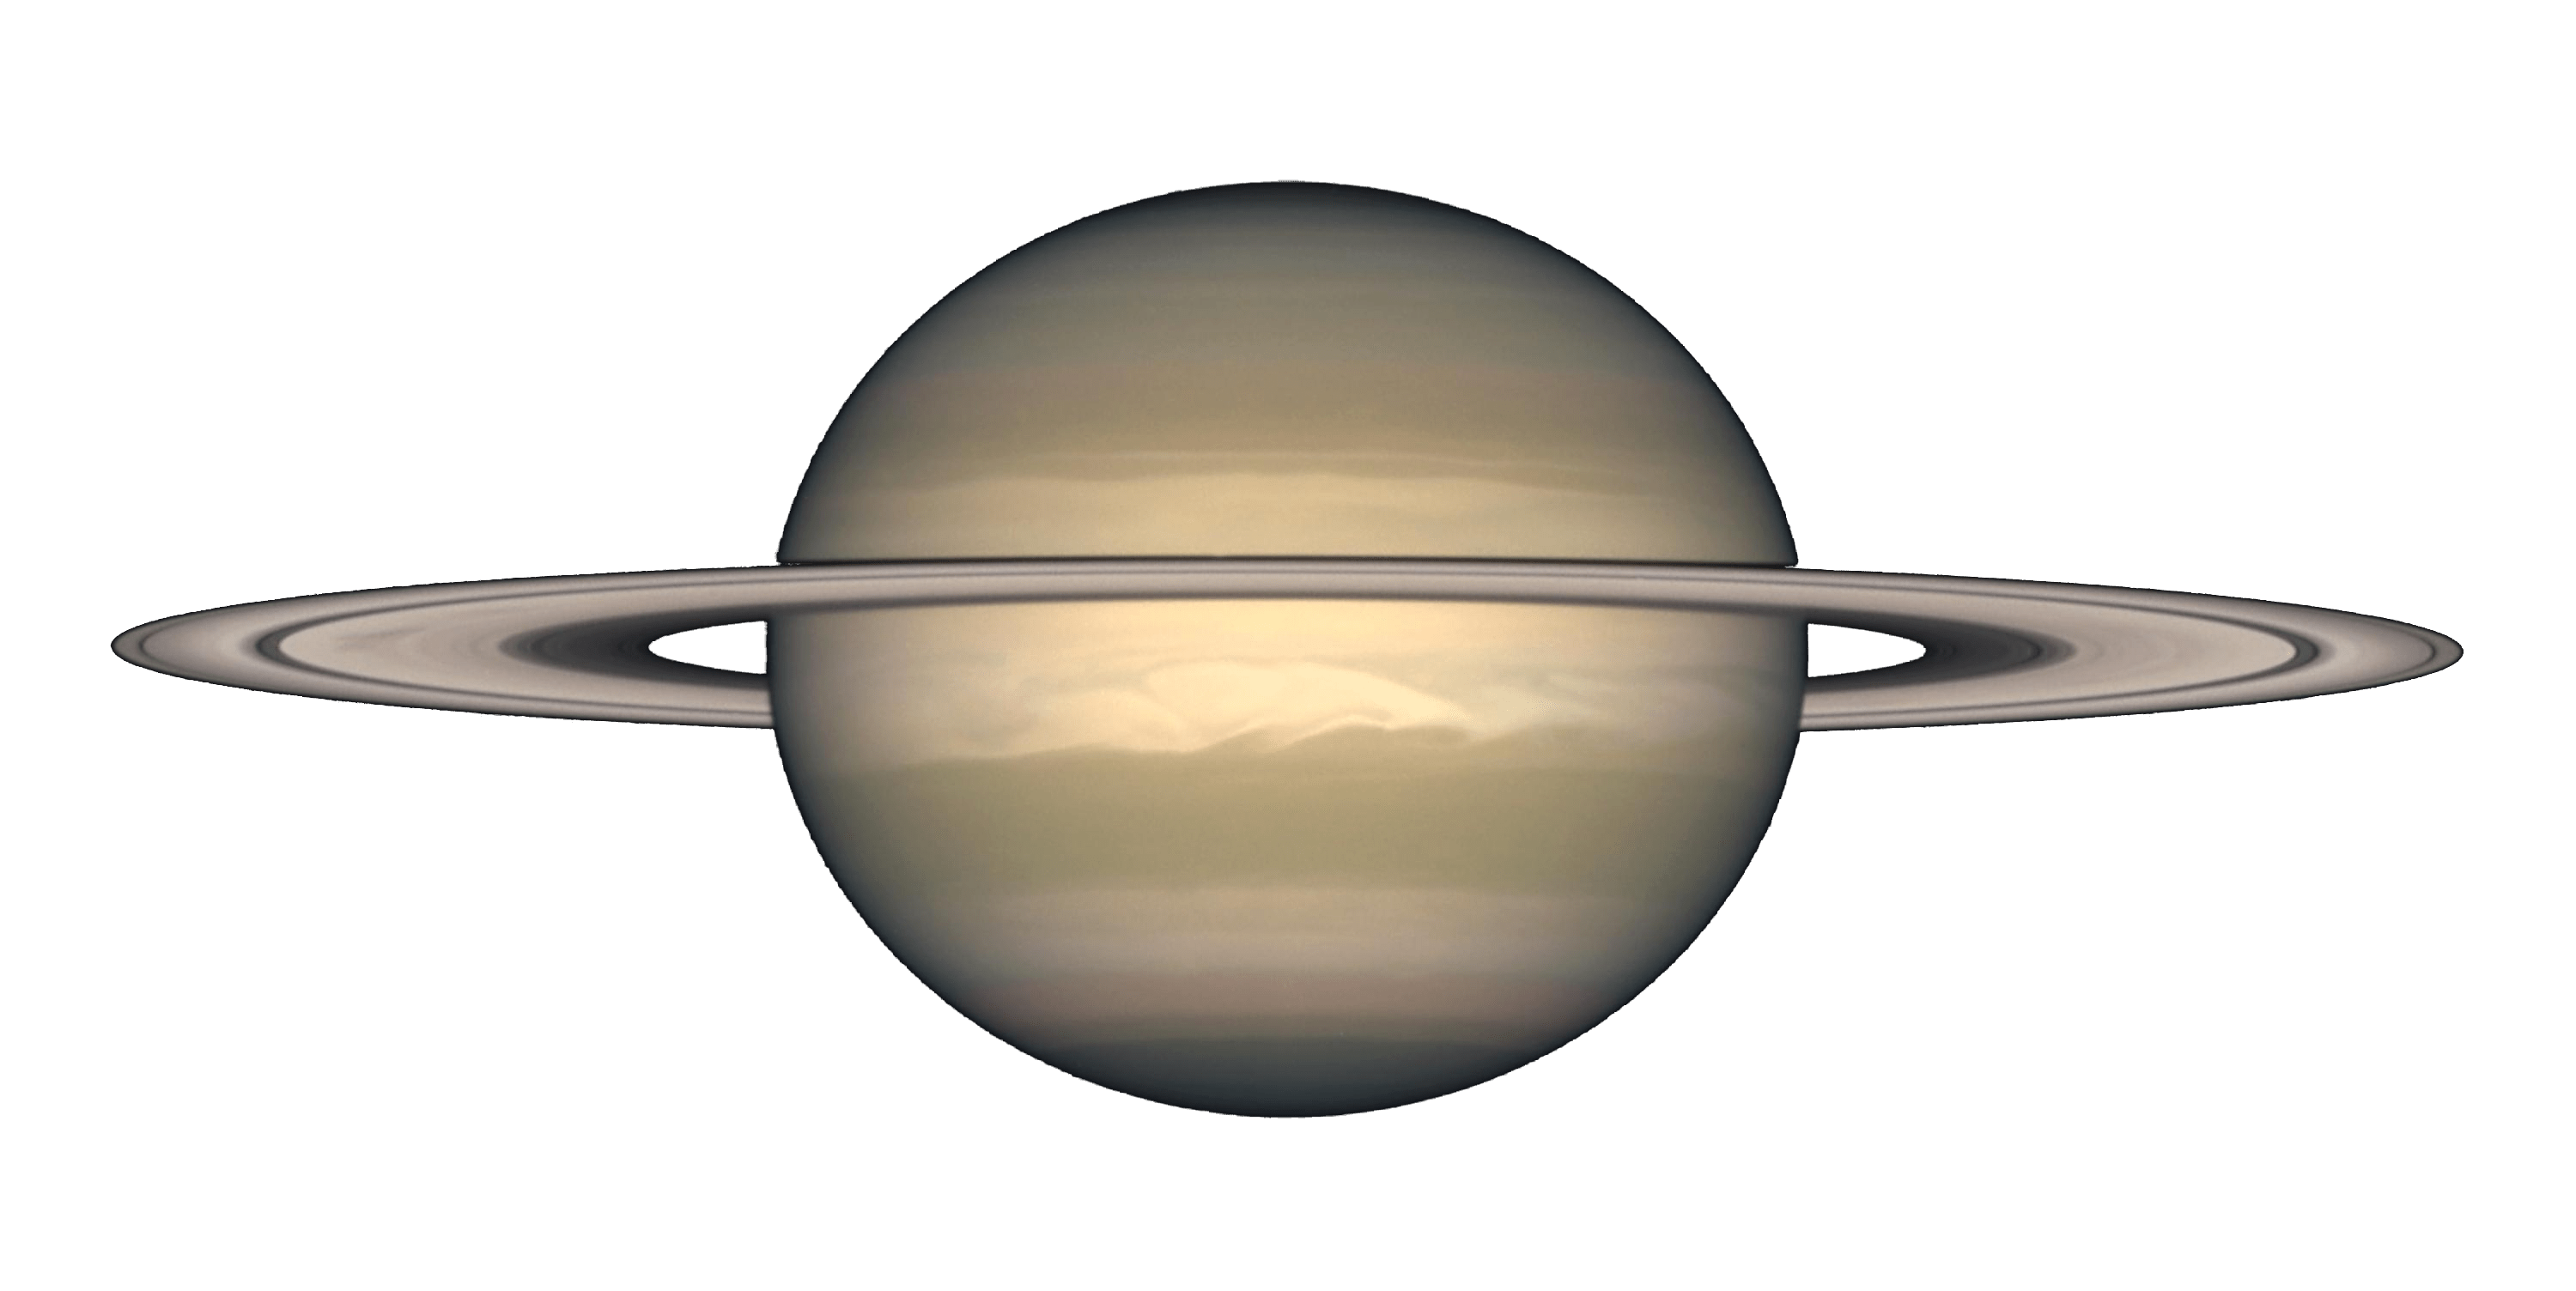 Mercury Hd Wallpaper File Saturn From Hubble Png Wikimedia Commons